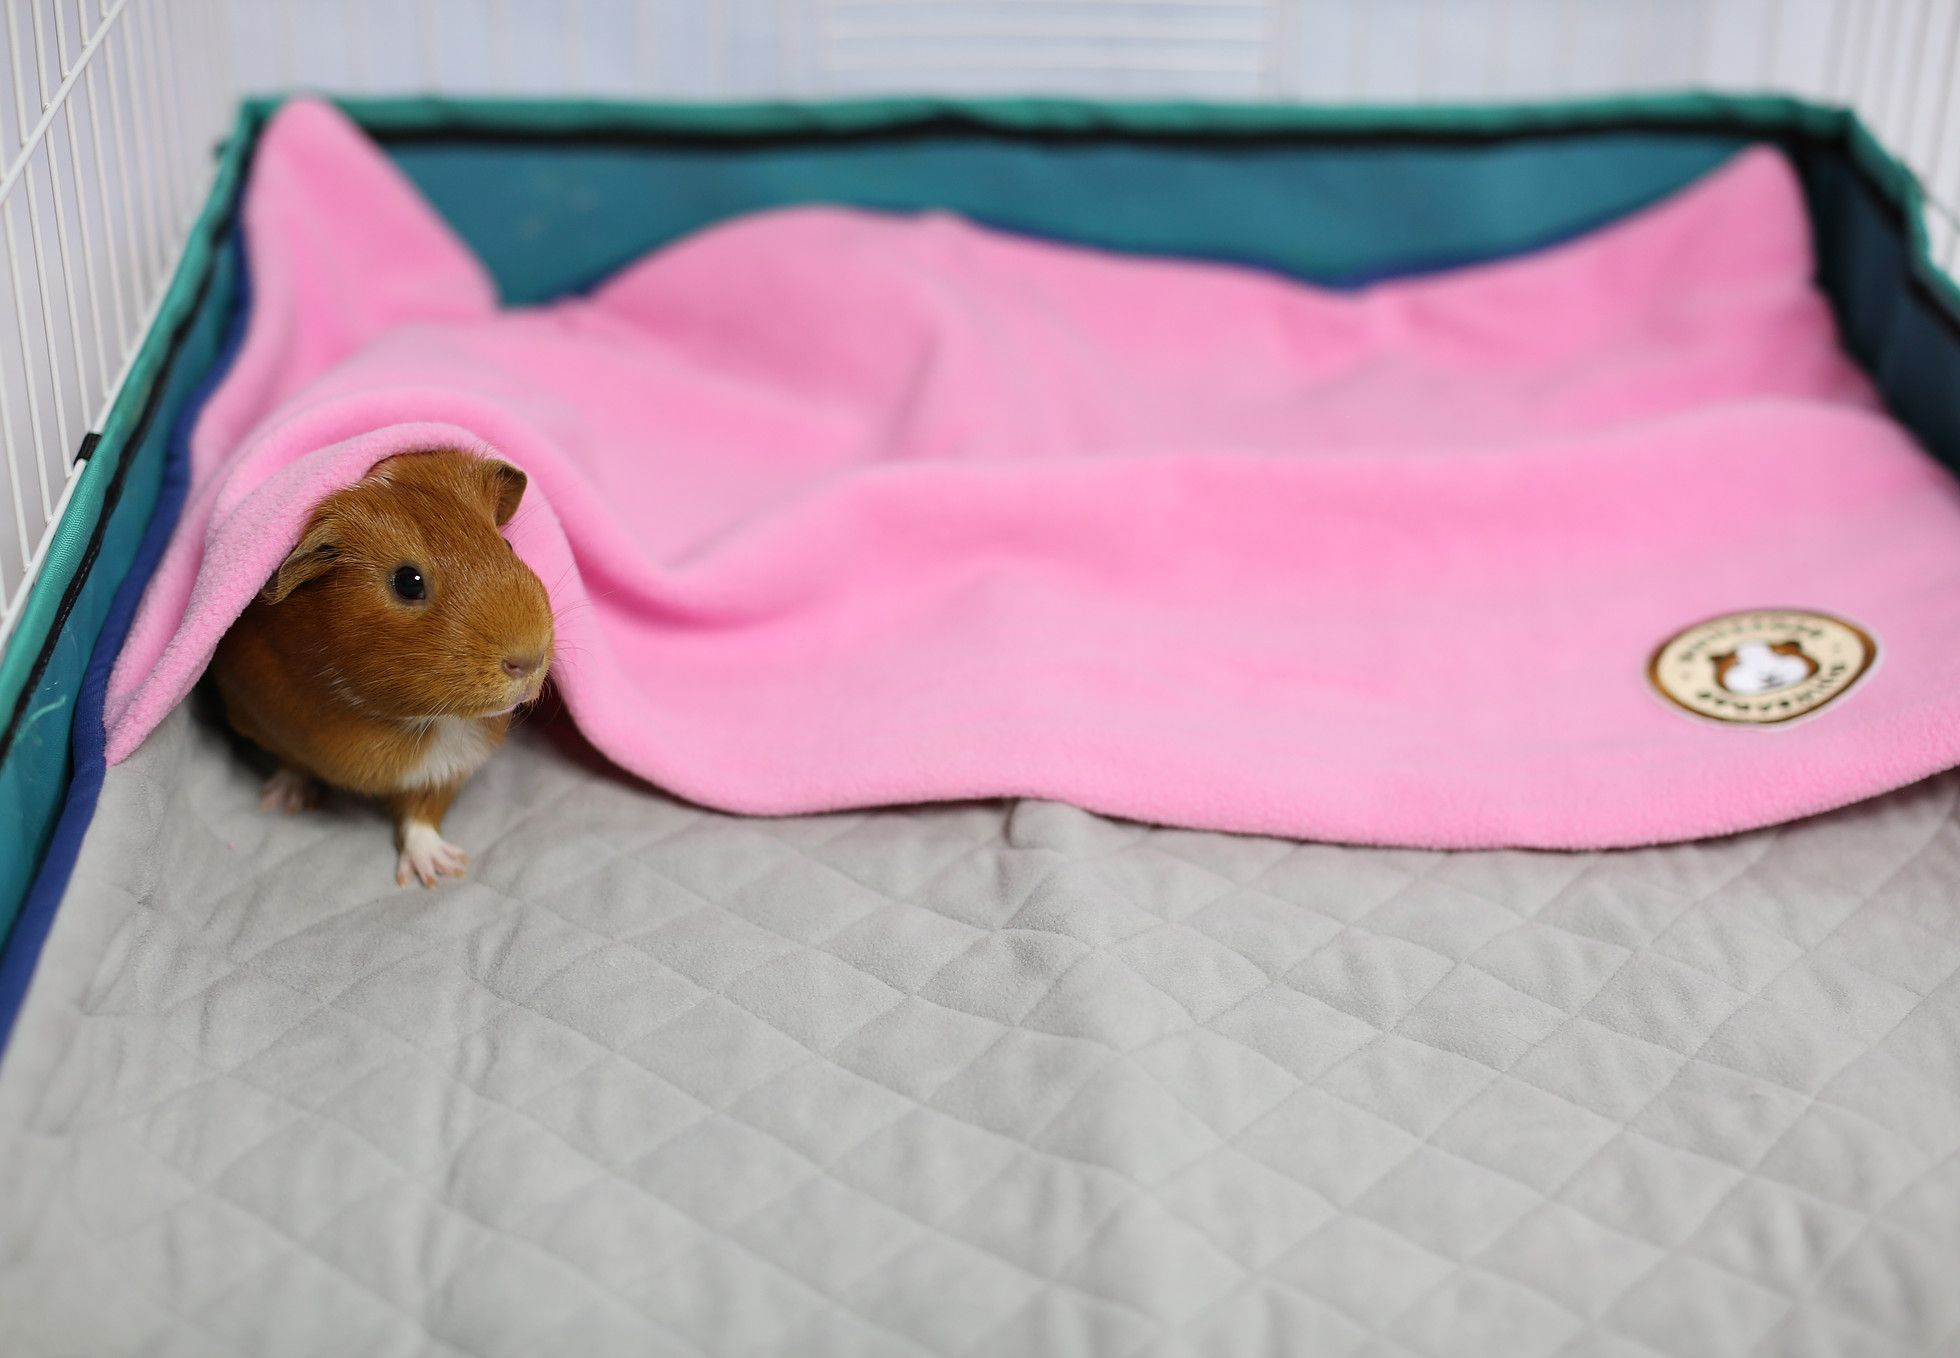 Pin On Guinea Piglets